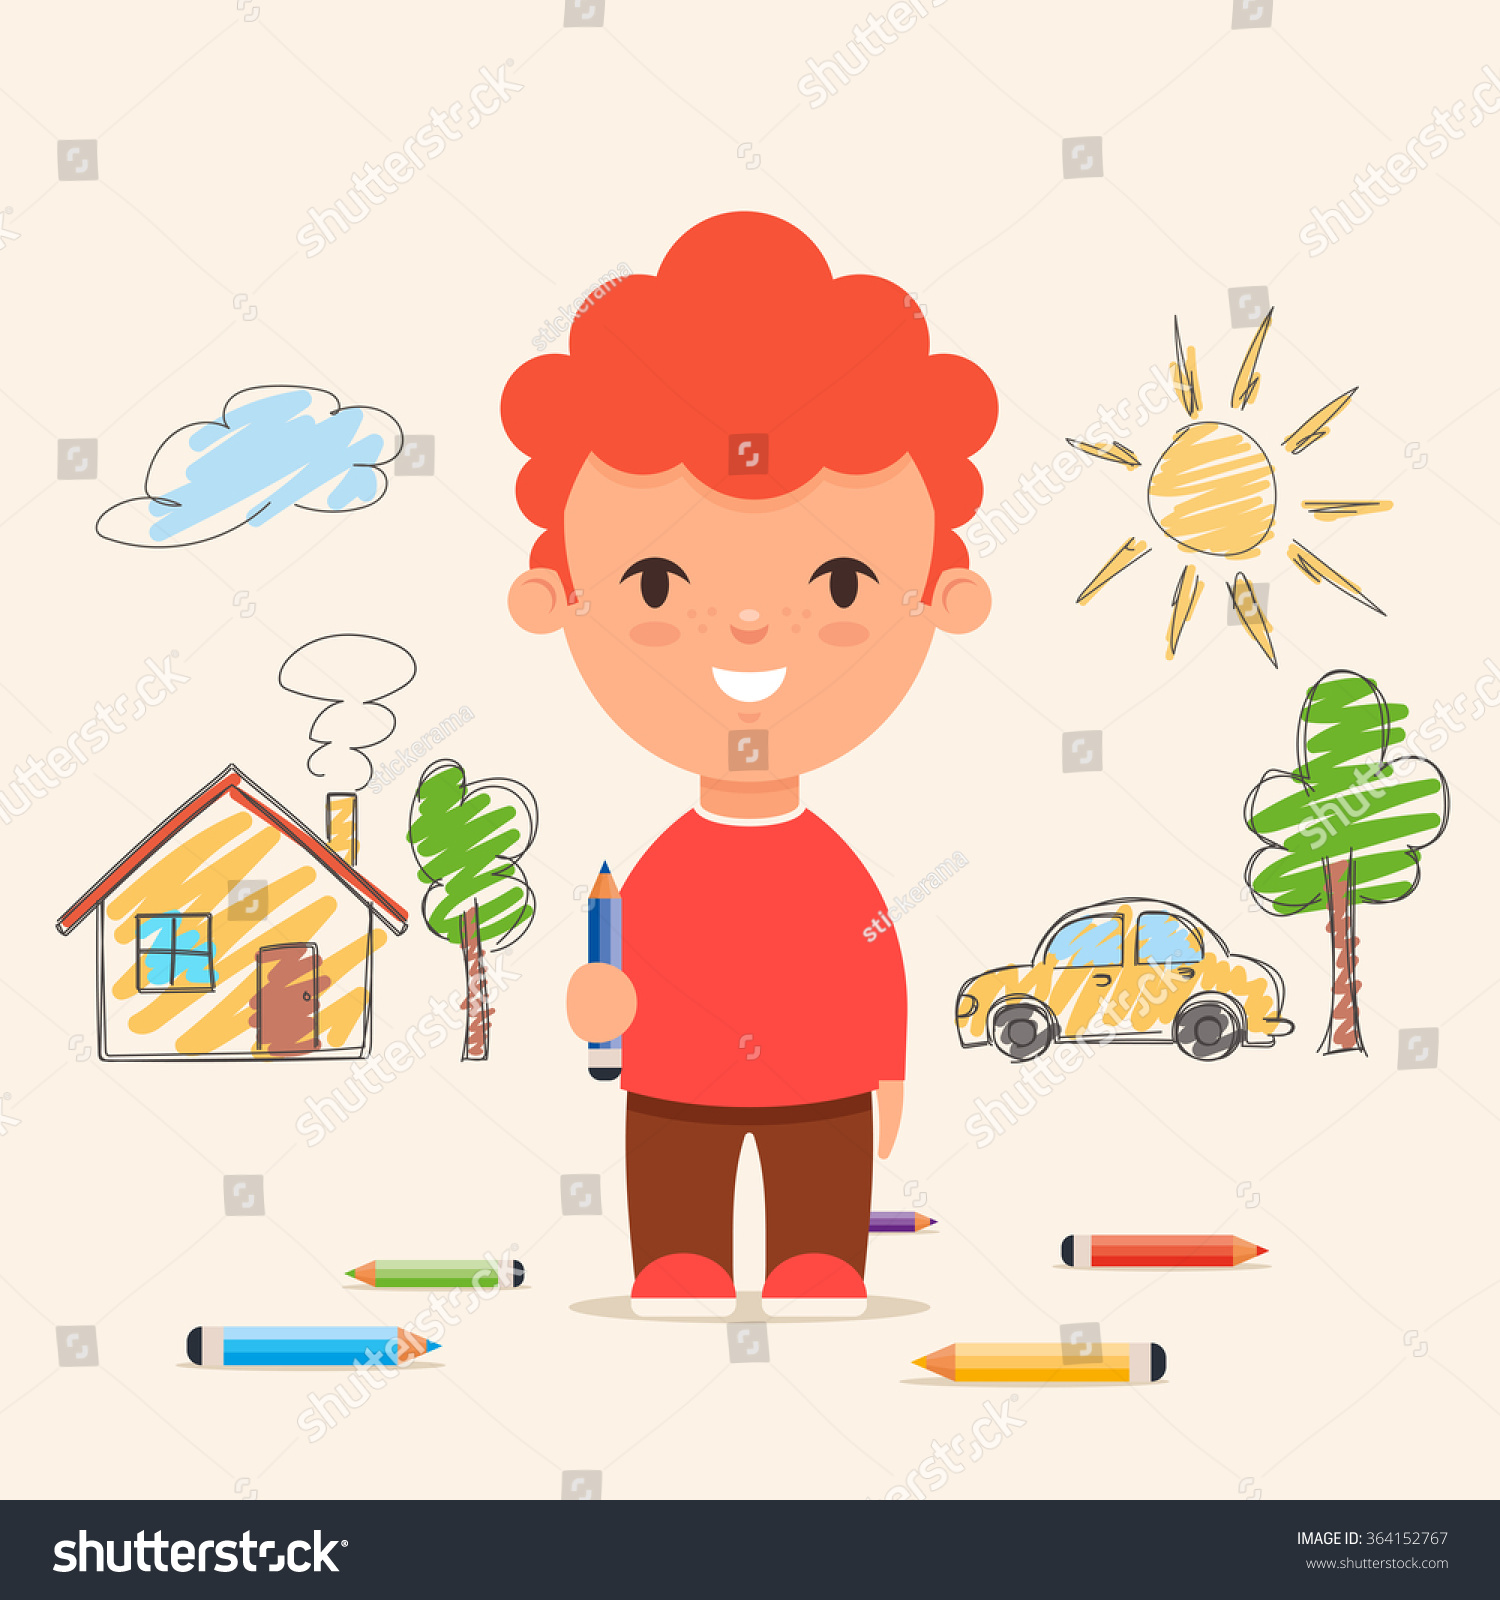 cute cartoon kid drawing house car and trees on the wall colorful vector illustration